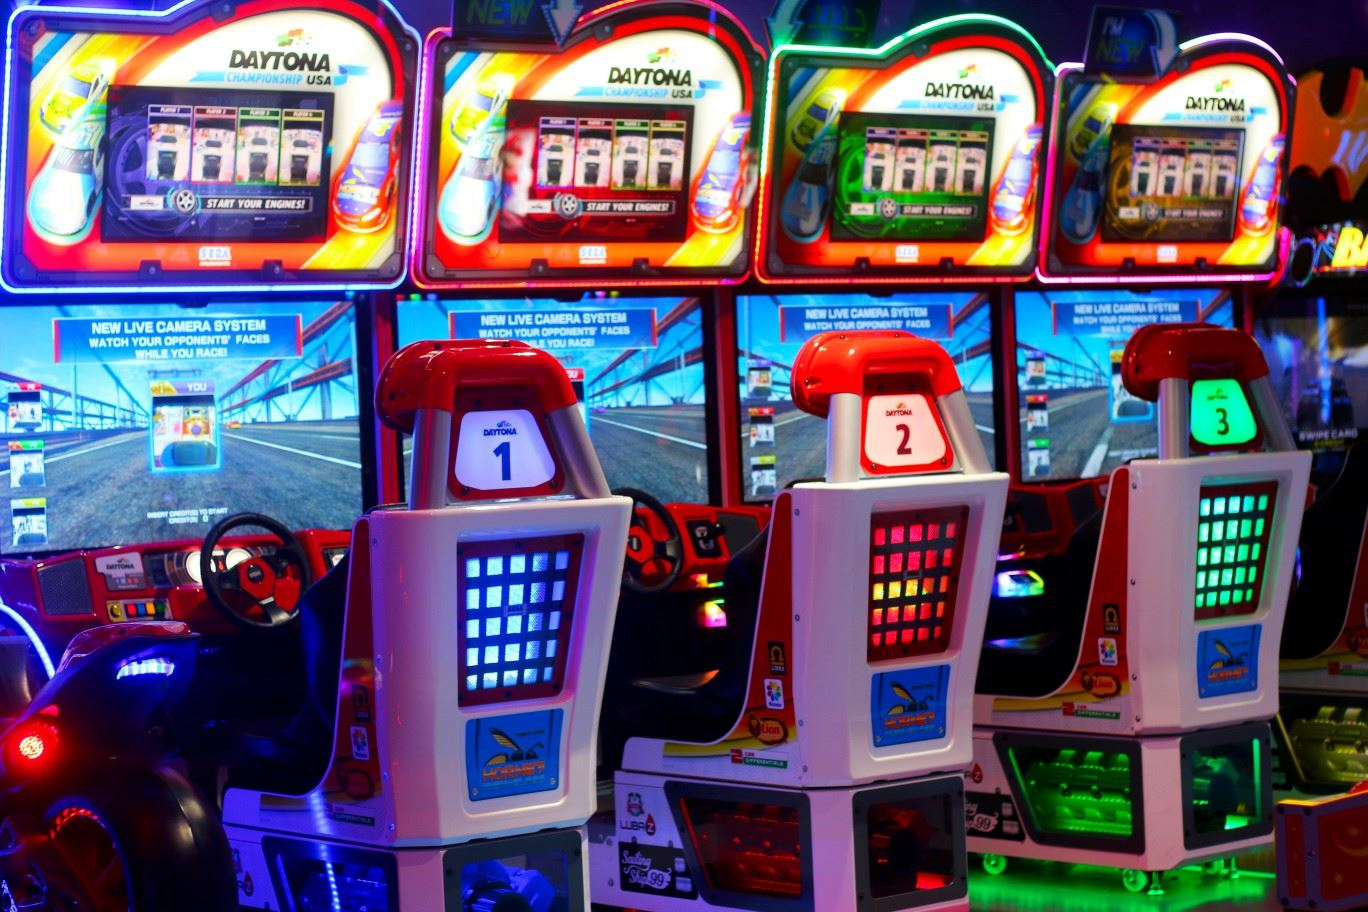 Daytona USA Video Game at Magic Planet